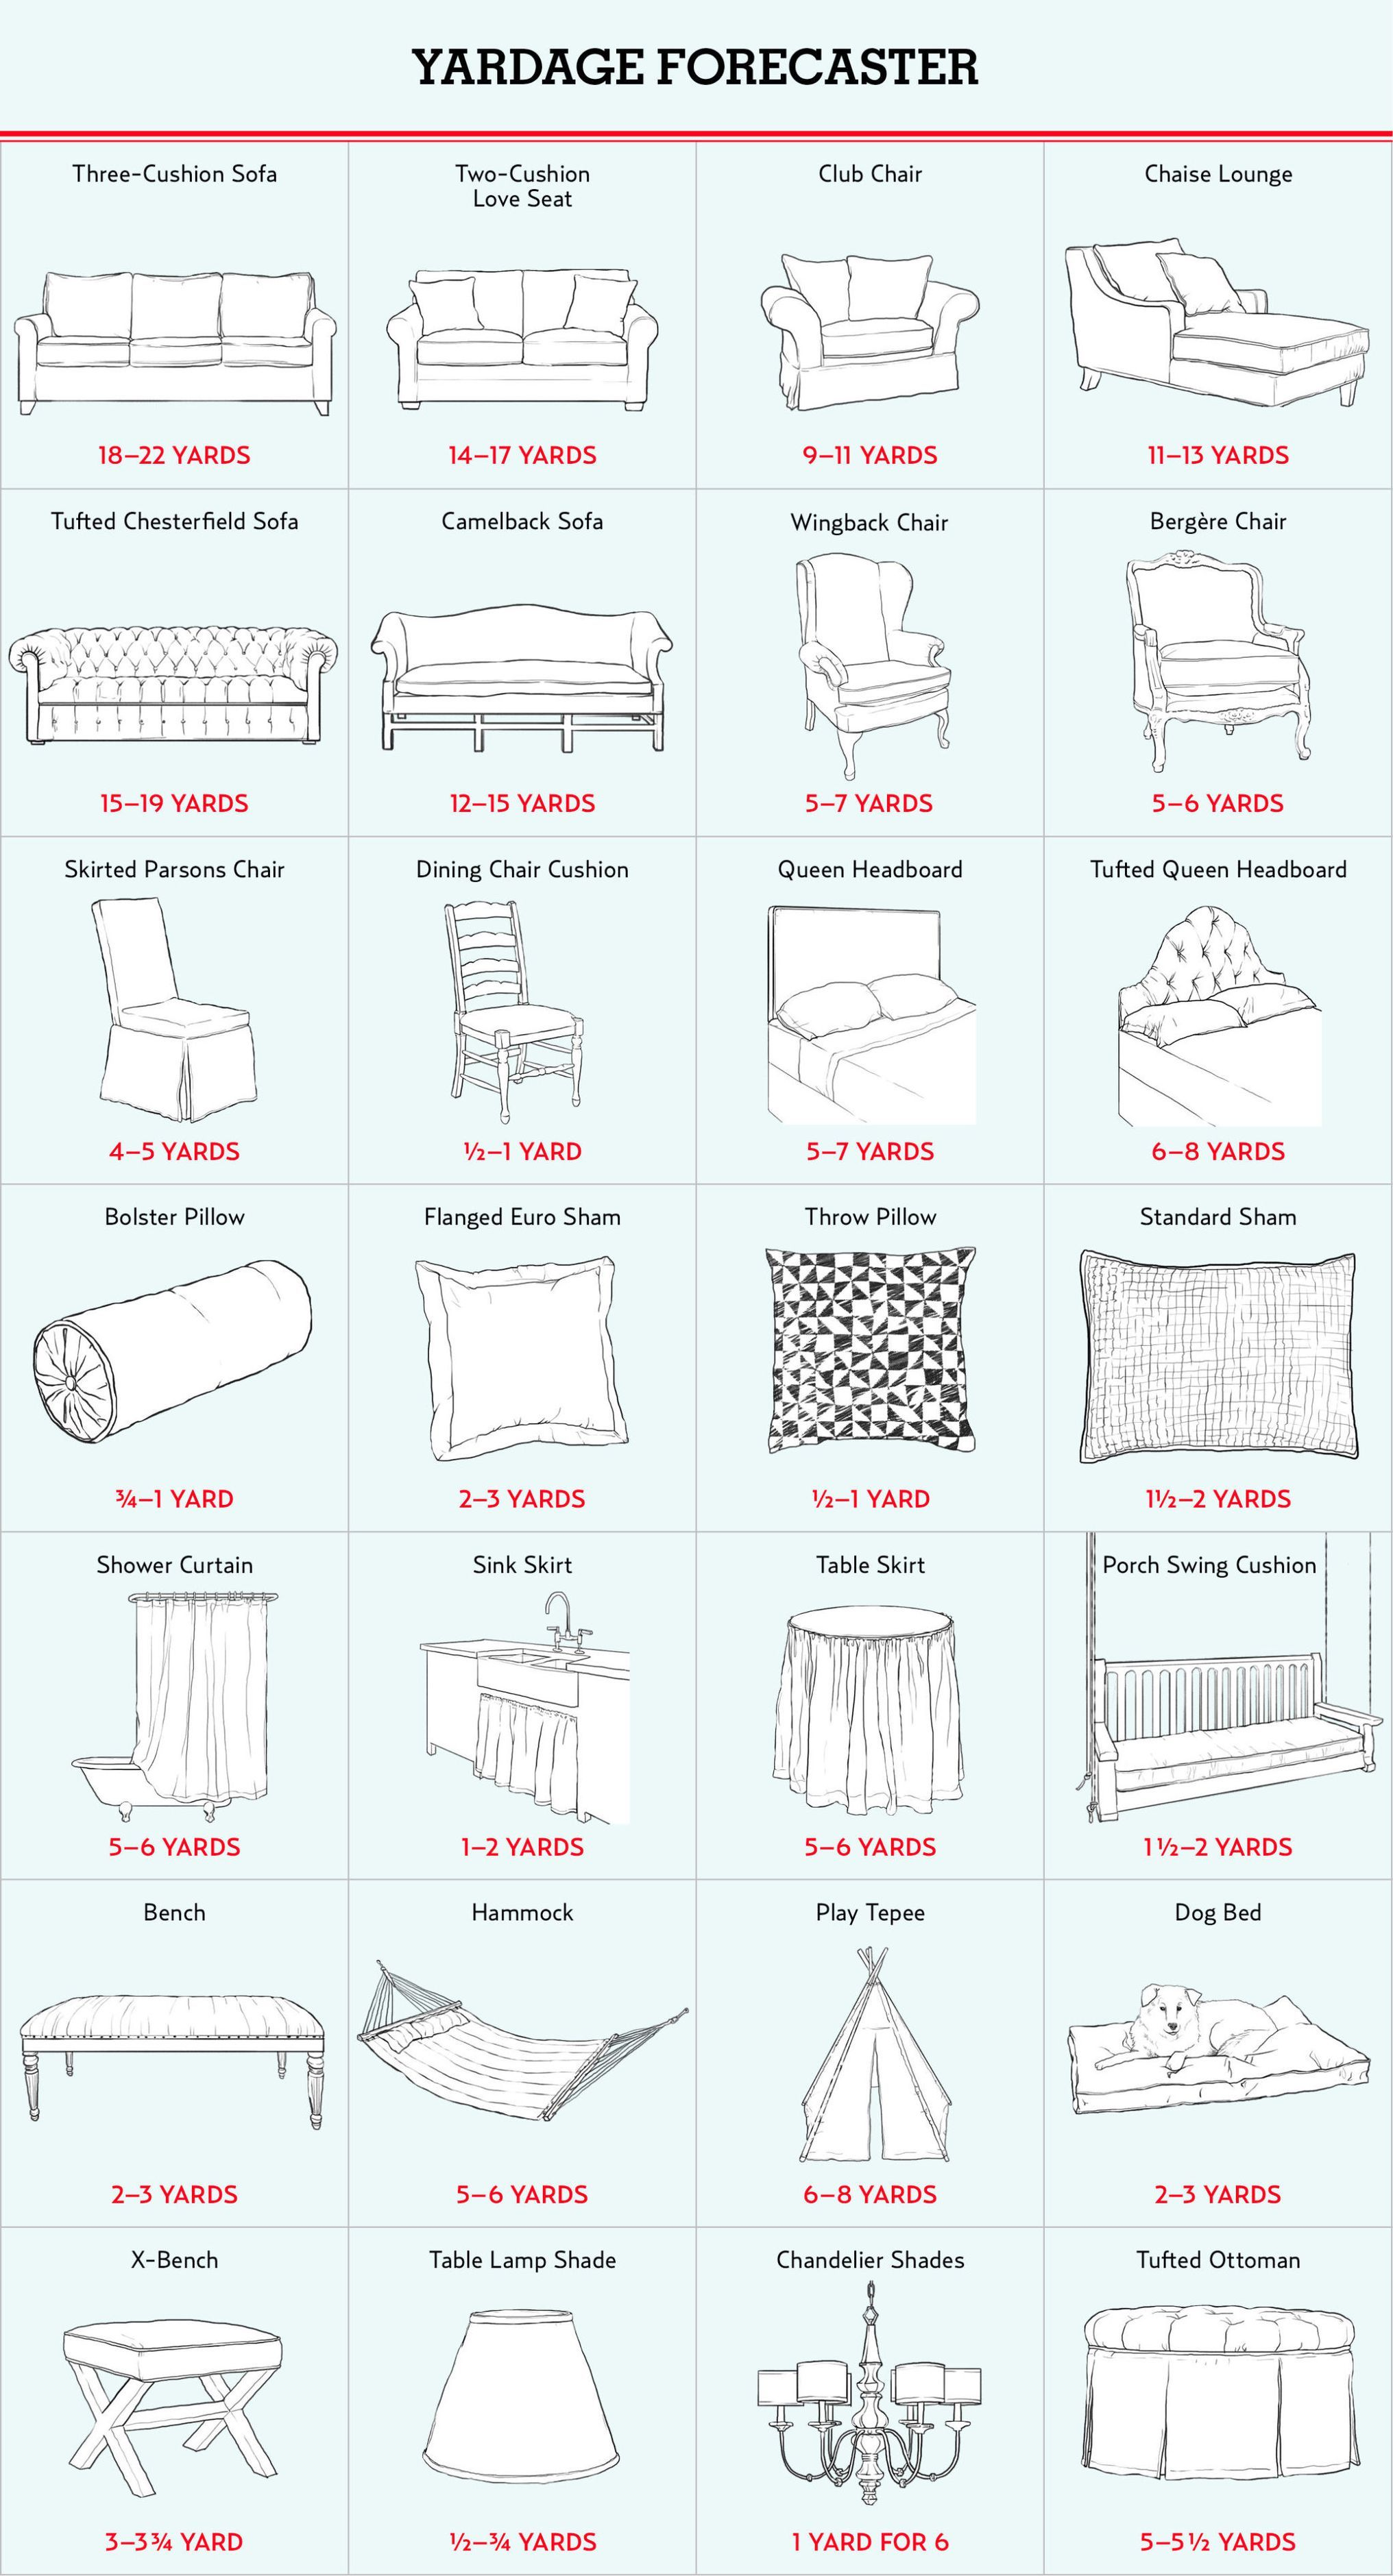 The Ultimate Guide To Customizing Your Furniture With Upholstery Upholstery Diy Reupholster Furniture Reupholster